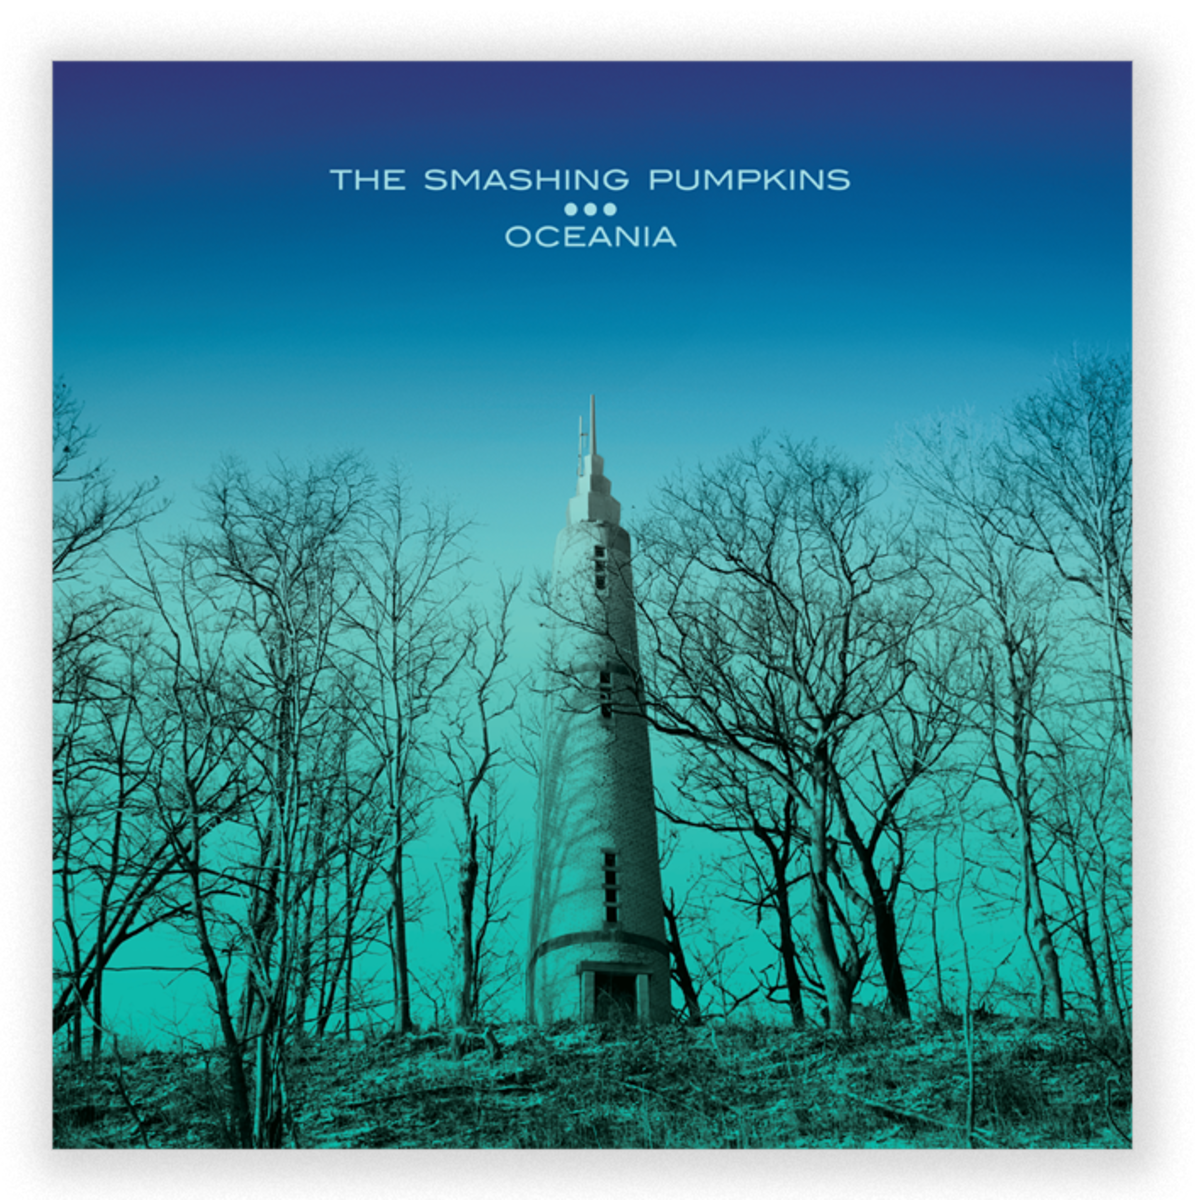 The Smashing Pumpkins Oceania album